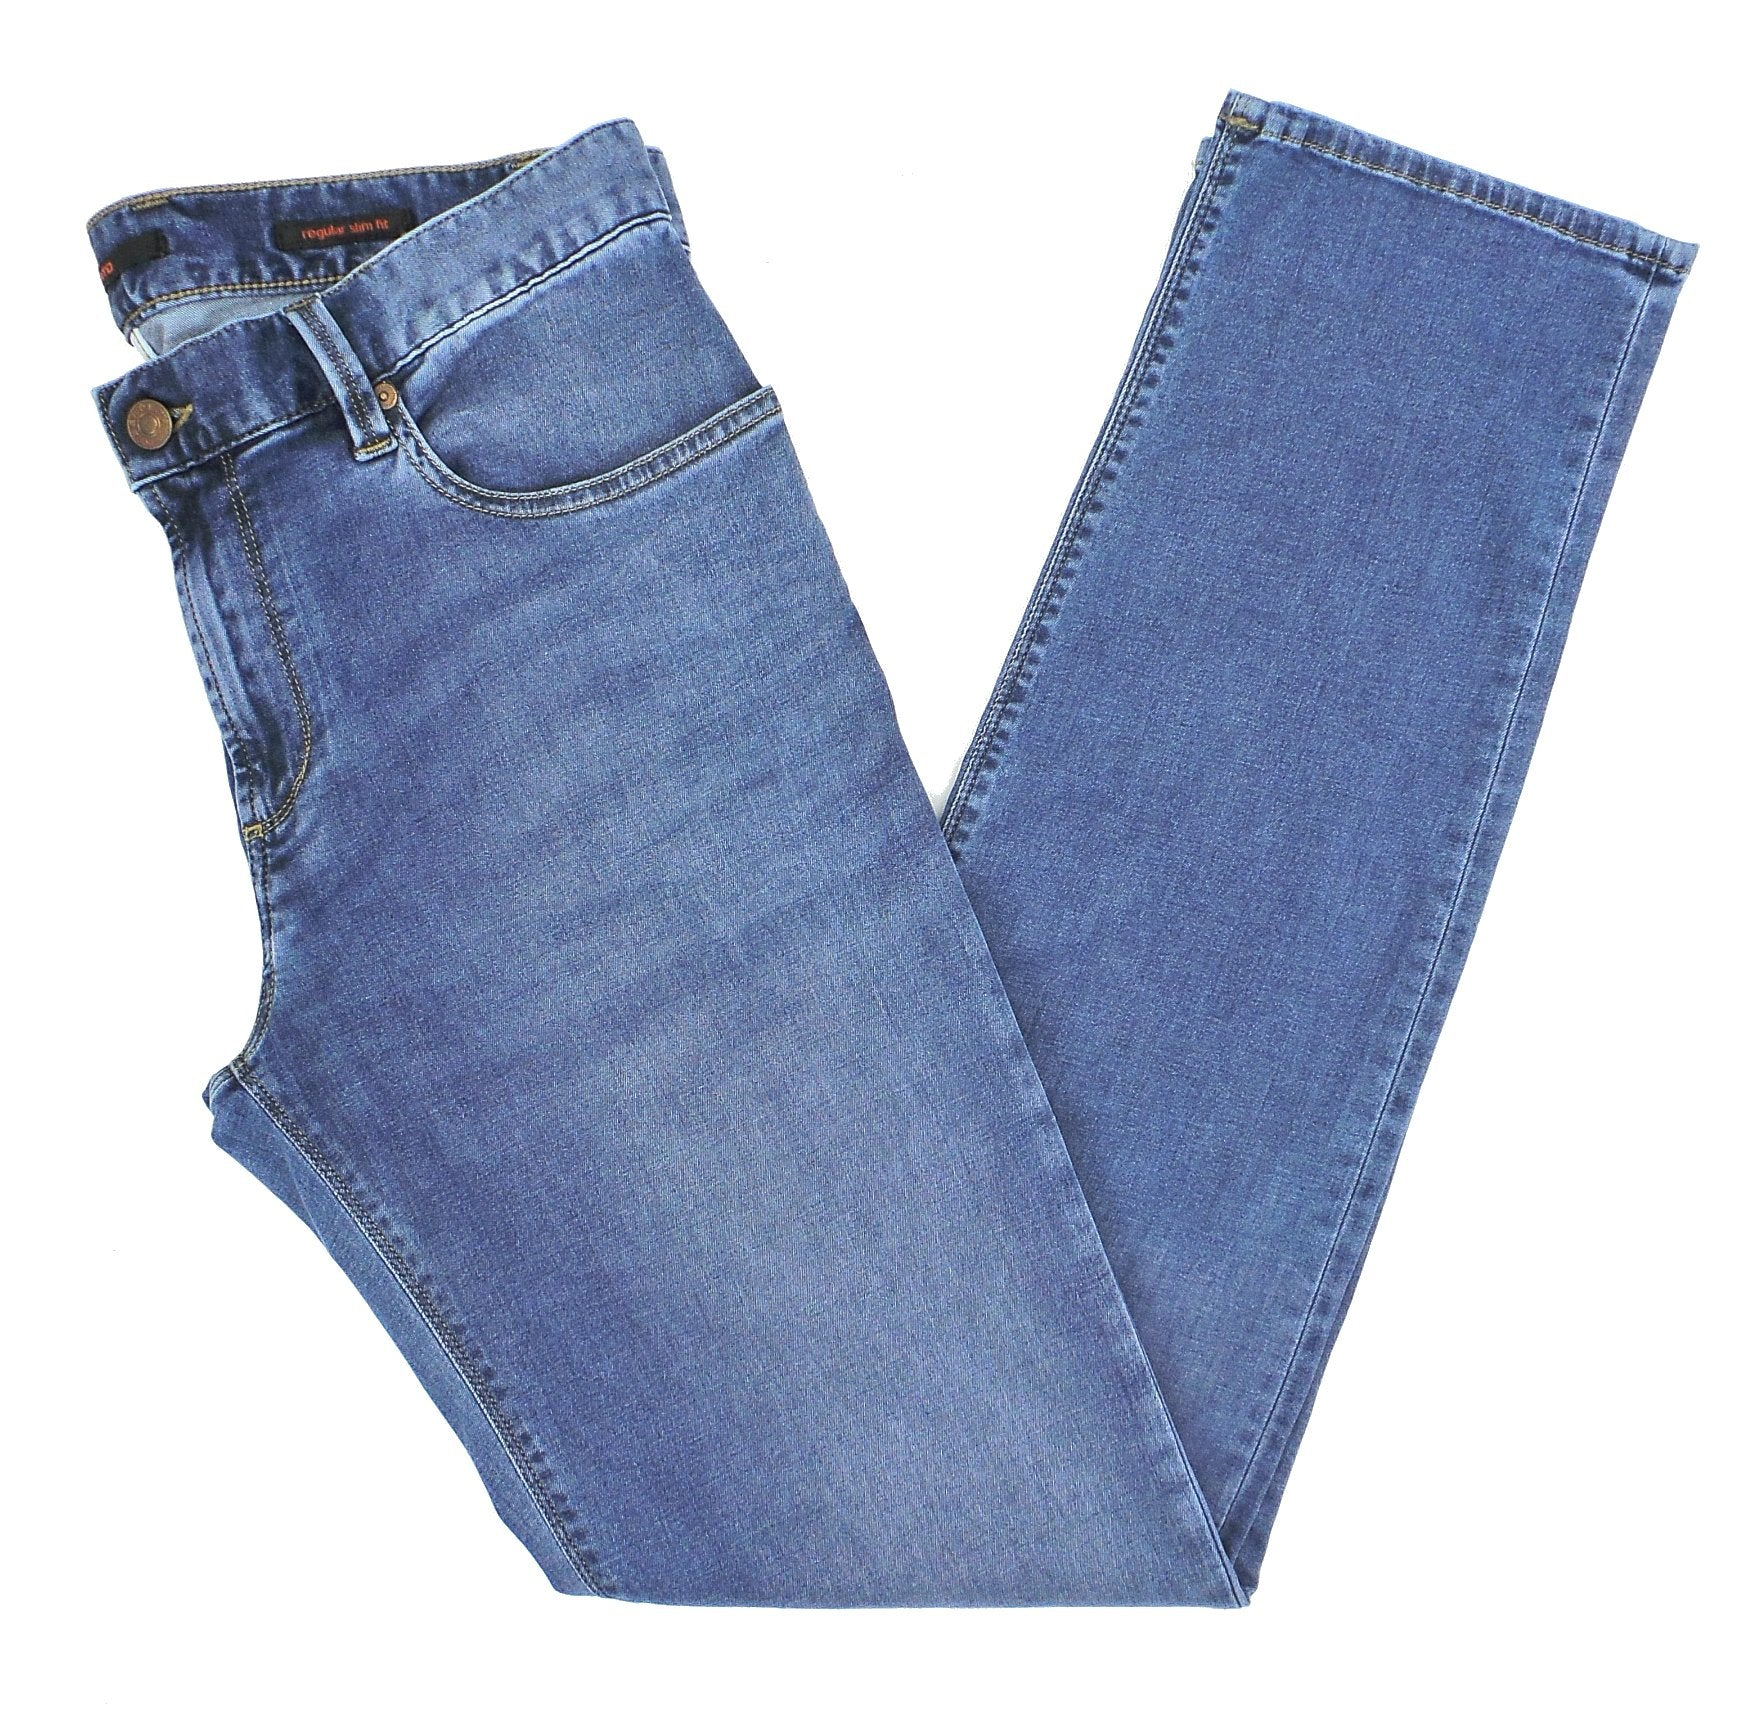 Alberto Pipe 1978 Regular Slim Fit Dynamic Superfit Light Tencel Denim Jeans